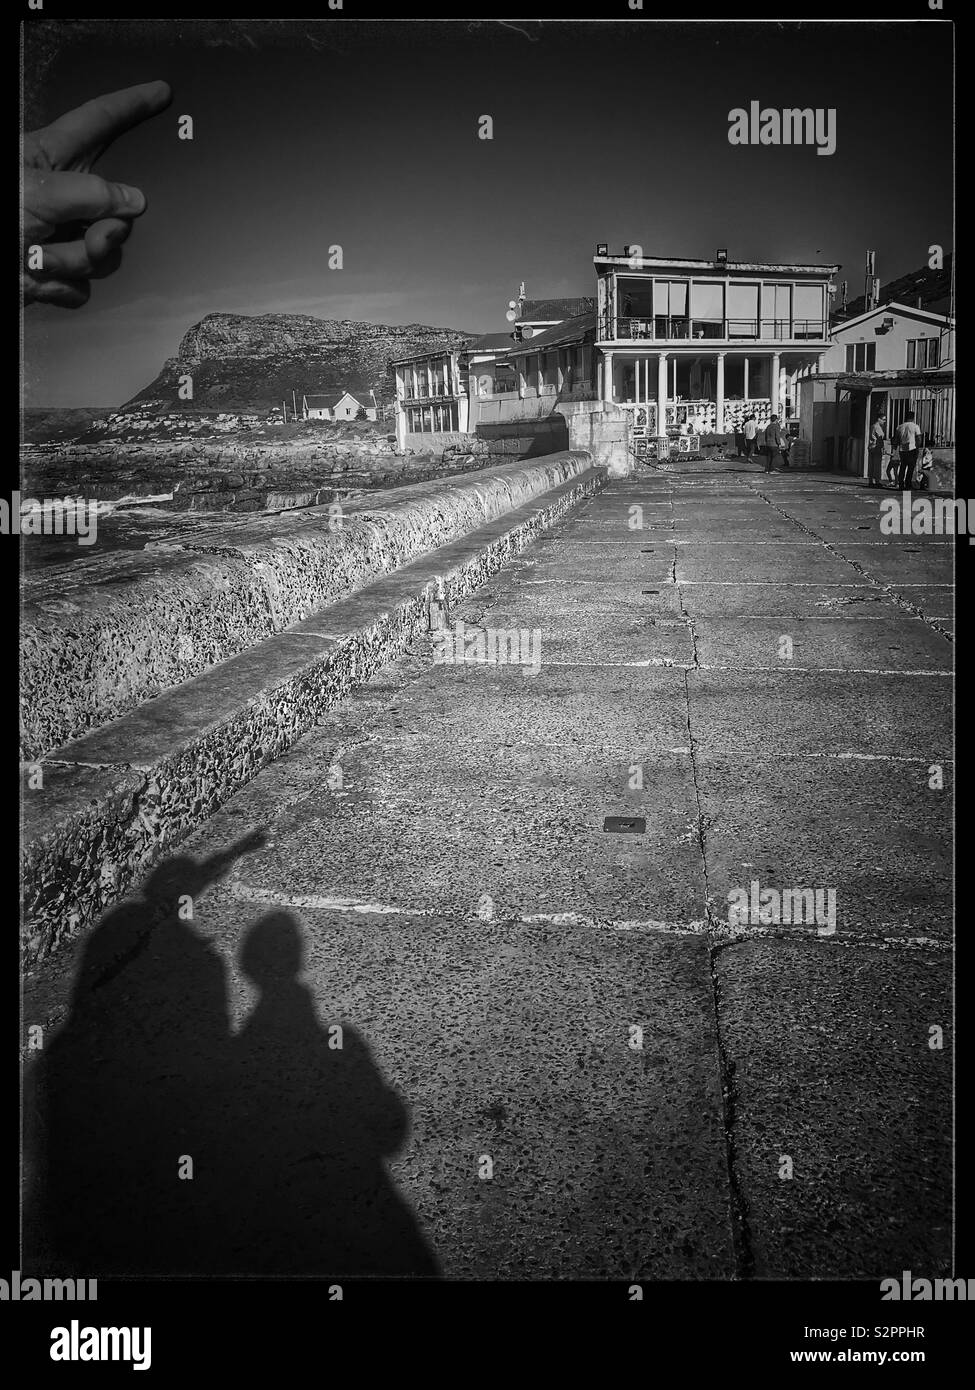 Shadow of people walking along promenade at Kalk Bay harbour, South Africa. - Stock Image